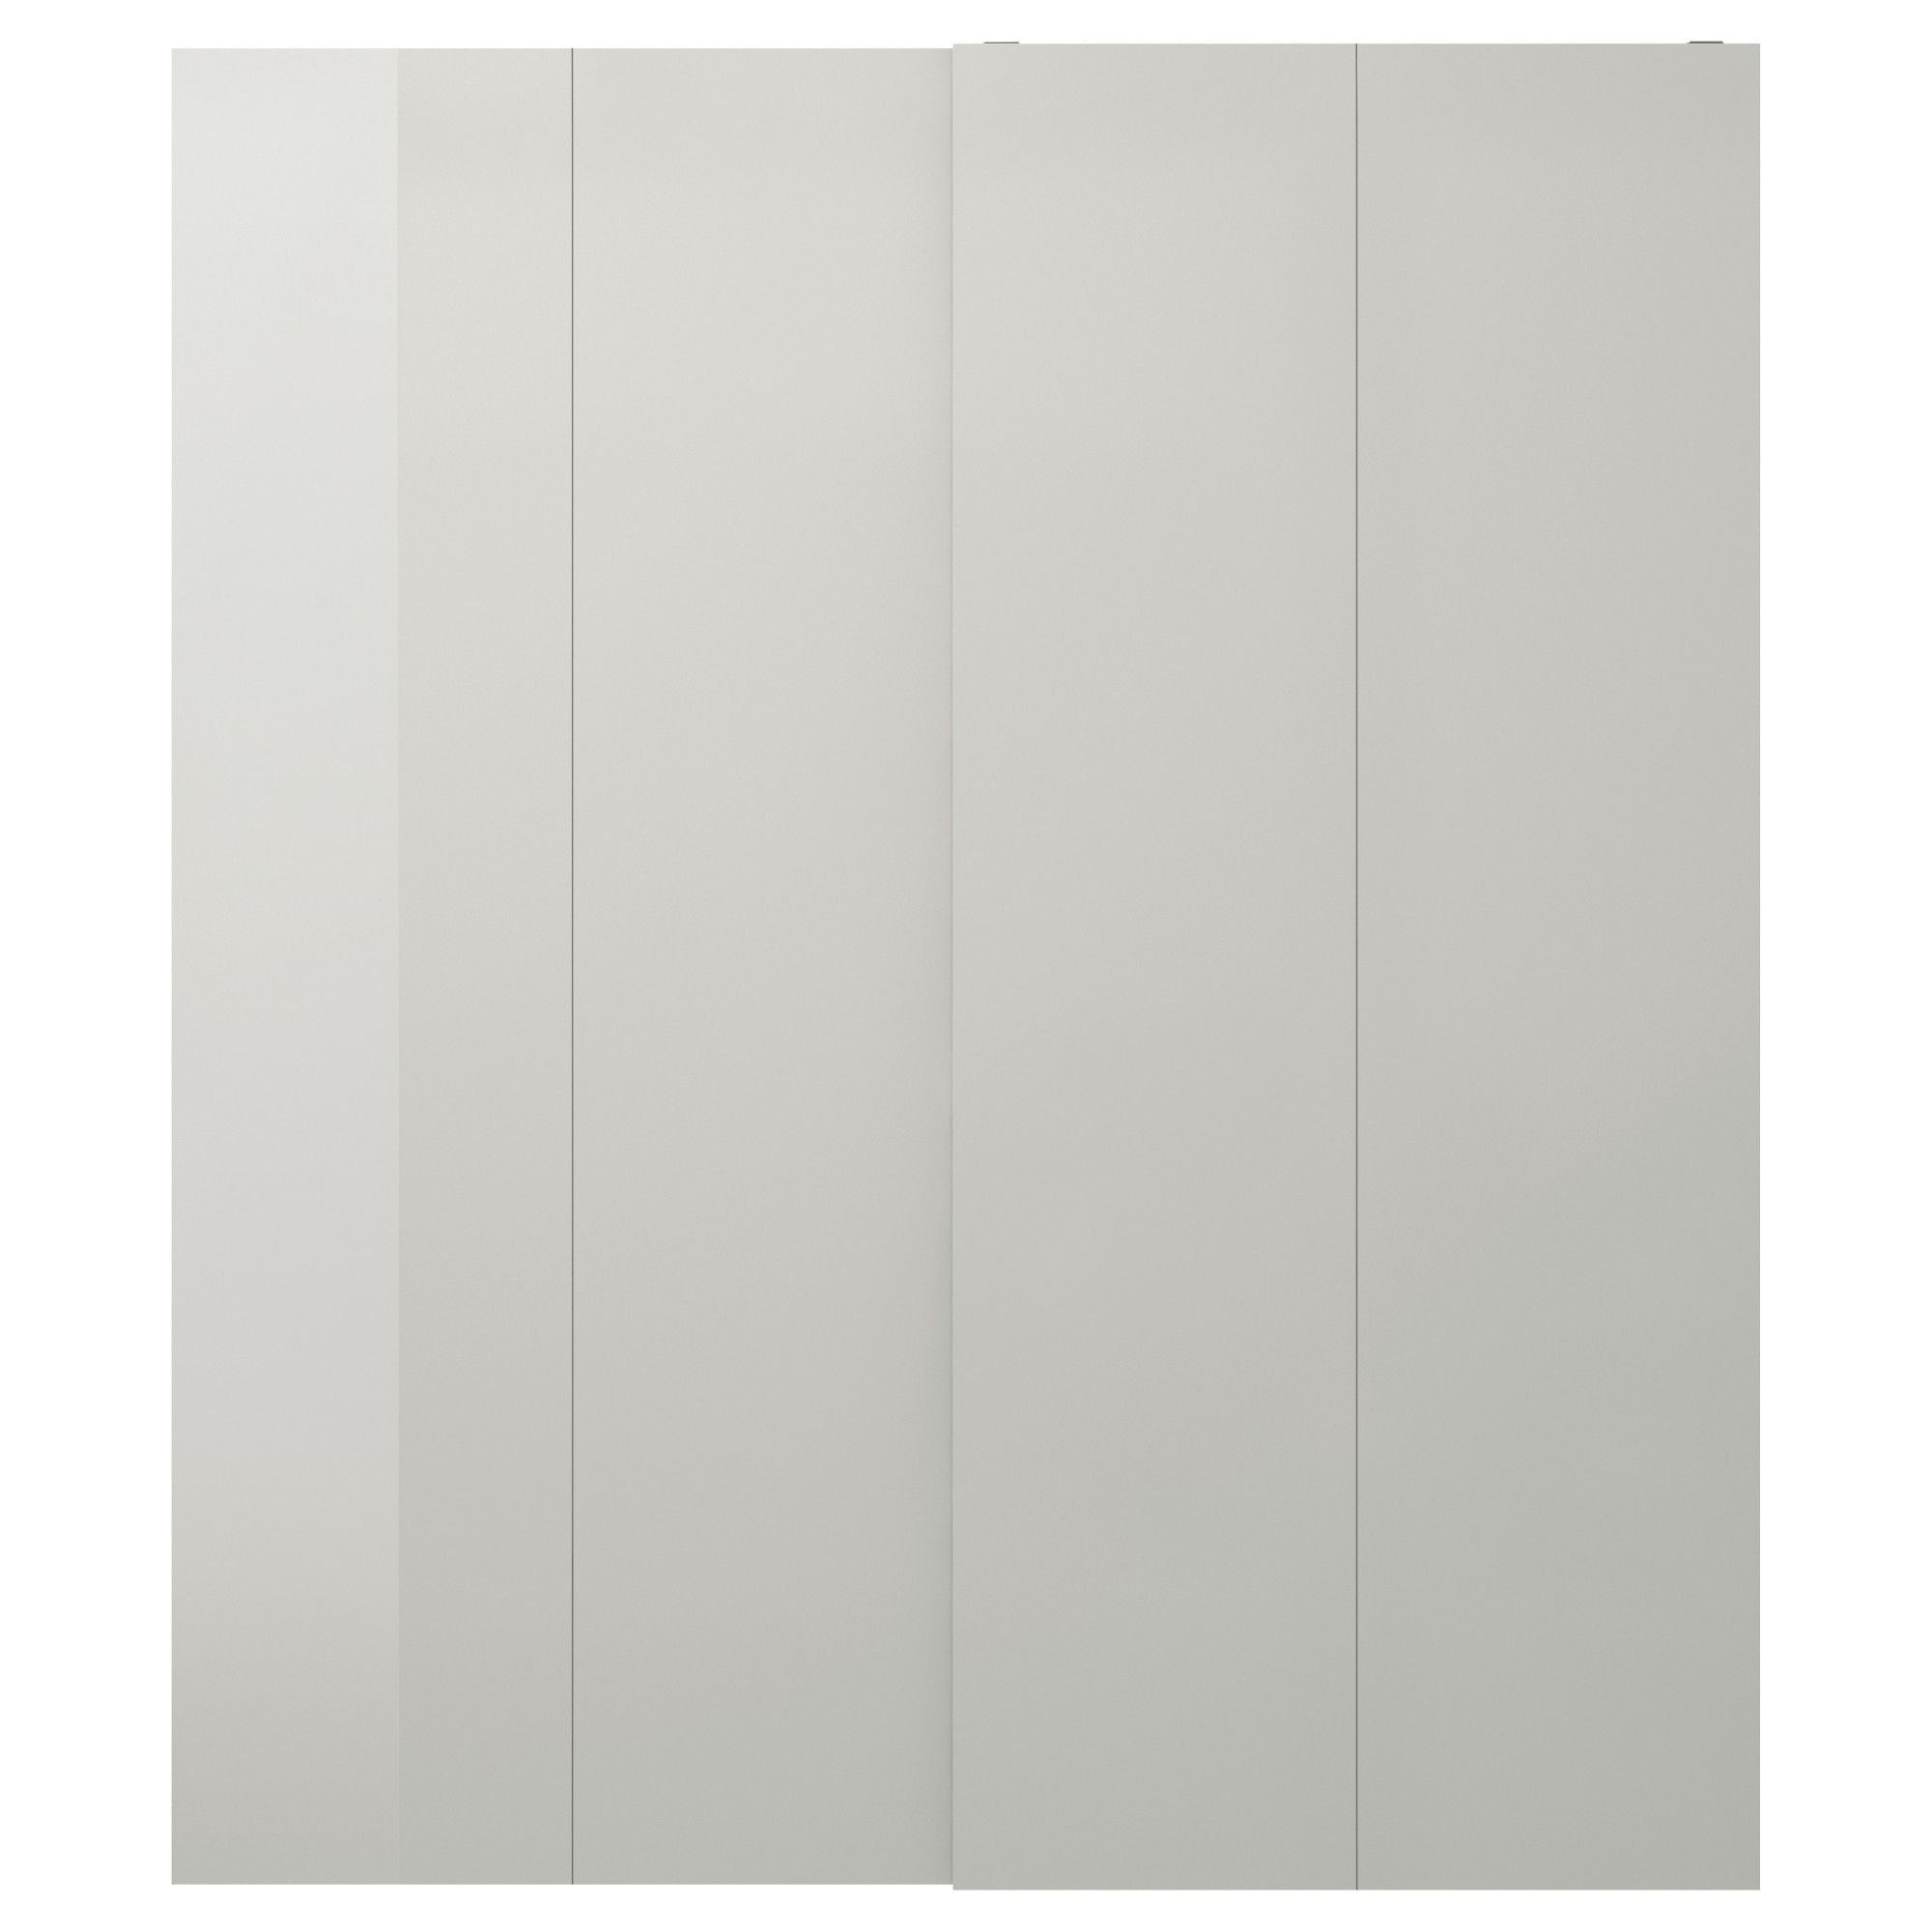 Light Hasvik Ikea High Grey Pair Cm Gloss Sliding Doors 200x236 Of JlK1cF